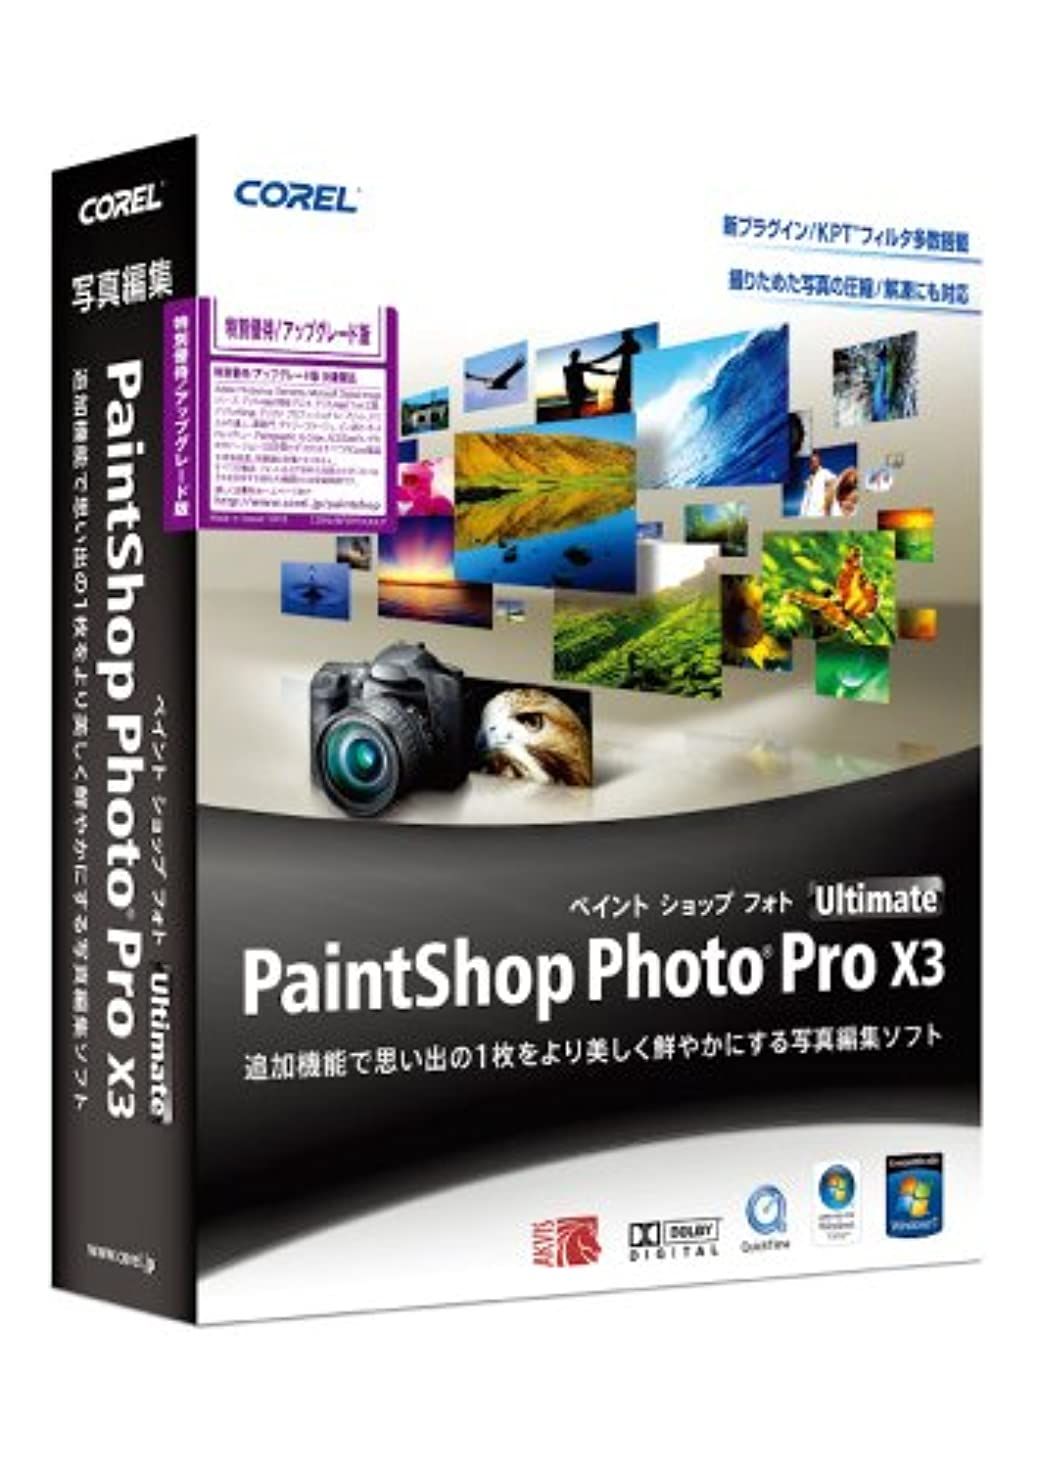 Corel PaintShop Photo Pro X3 Ultimate 特別優待アップグレード版